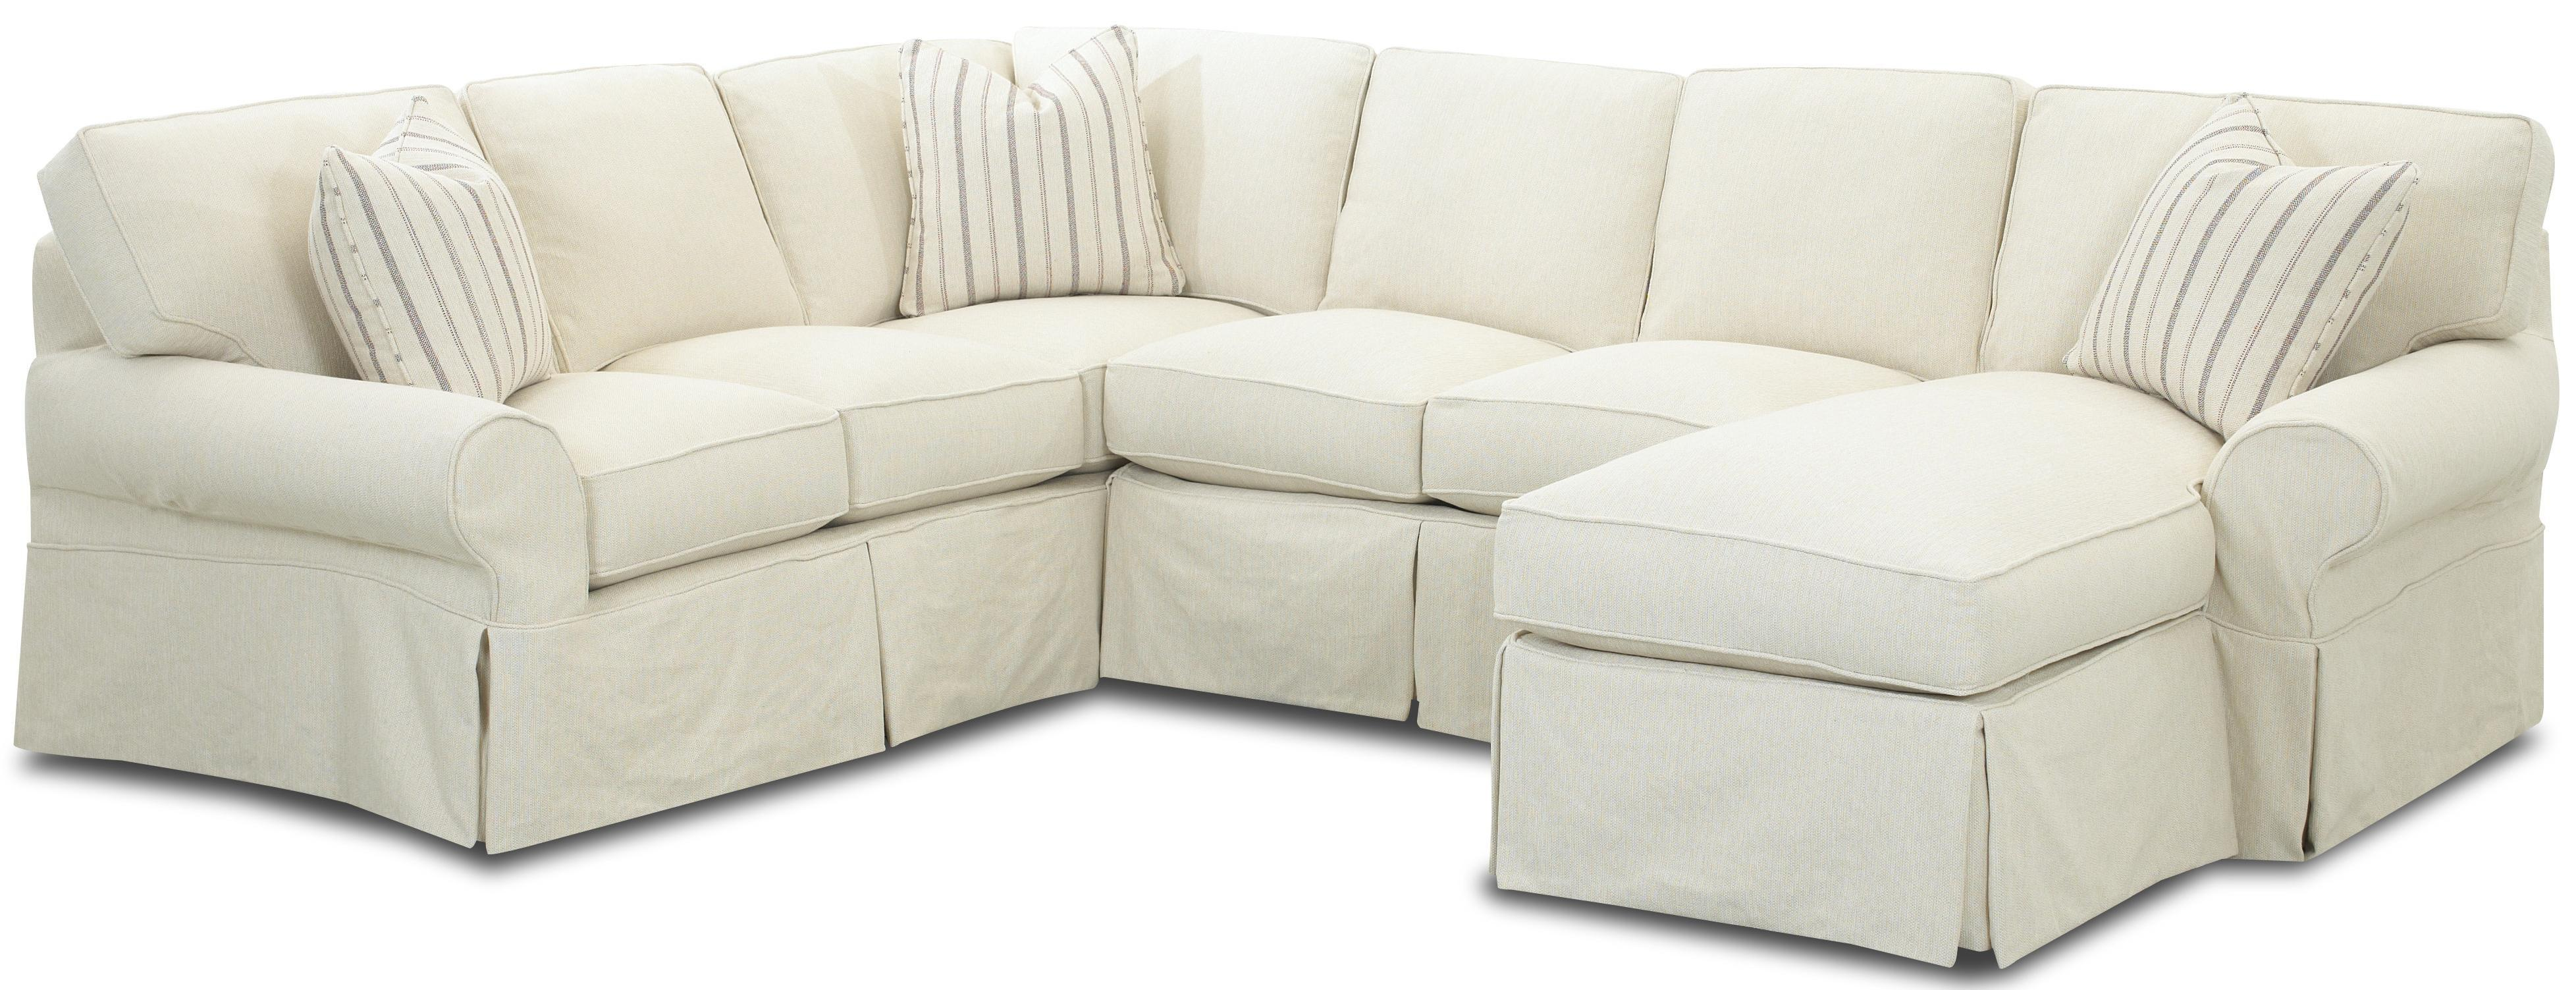 Diy Sectional Slipcovers Inspiration Mag